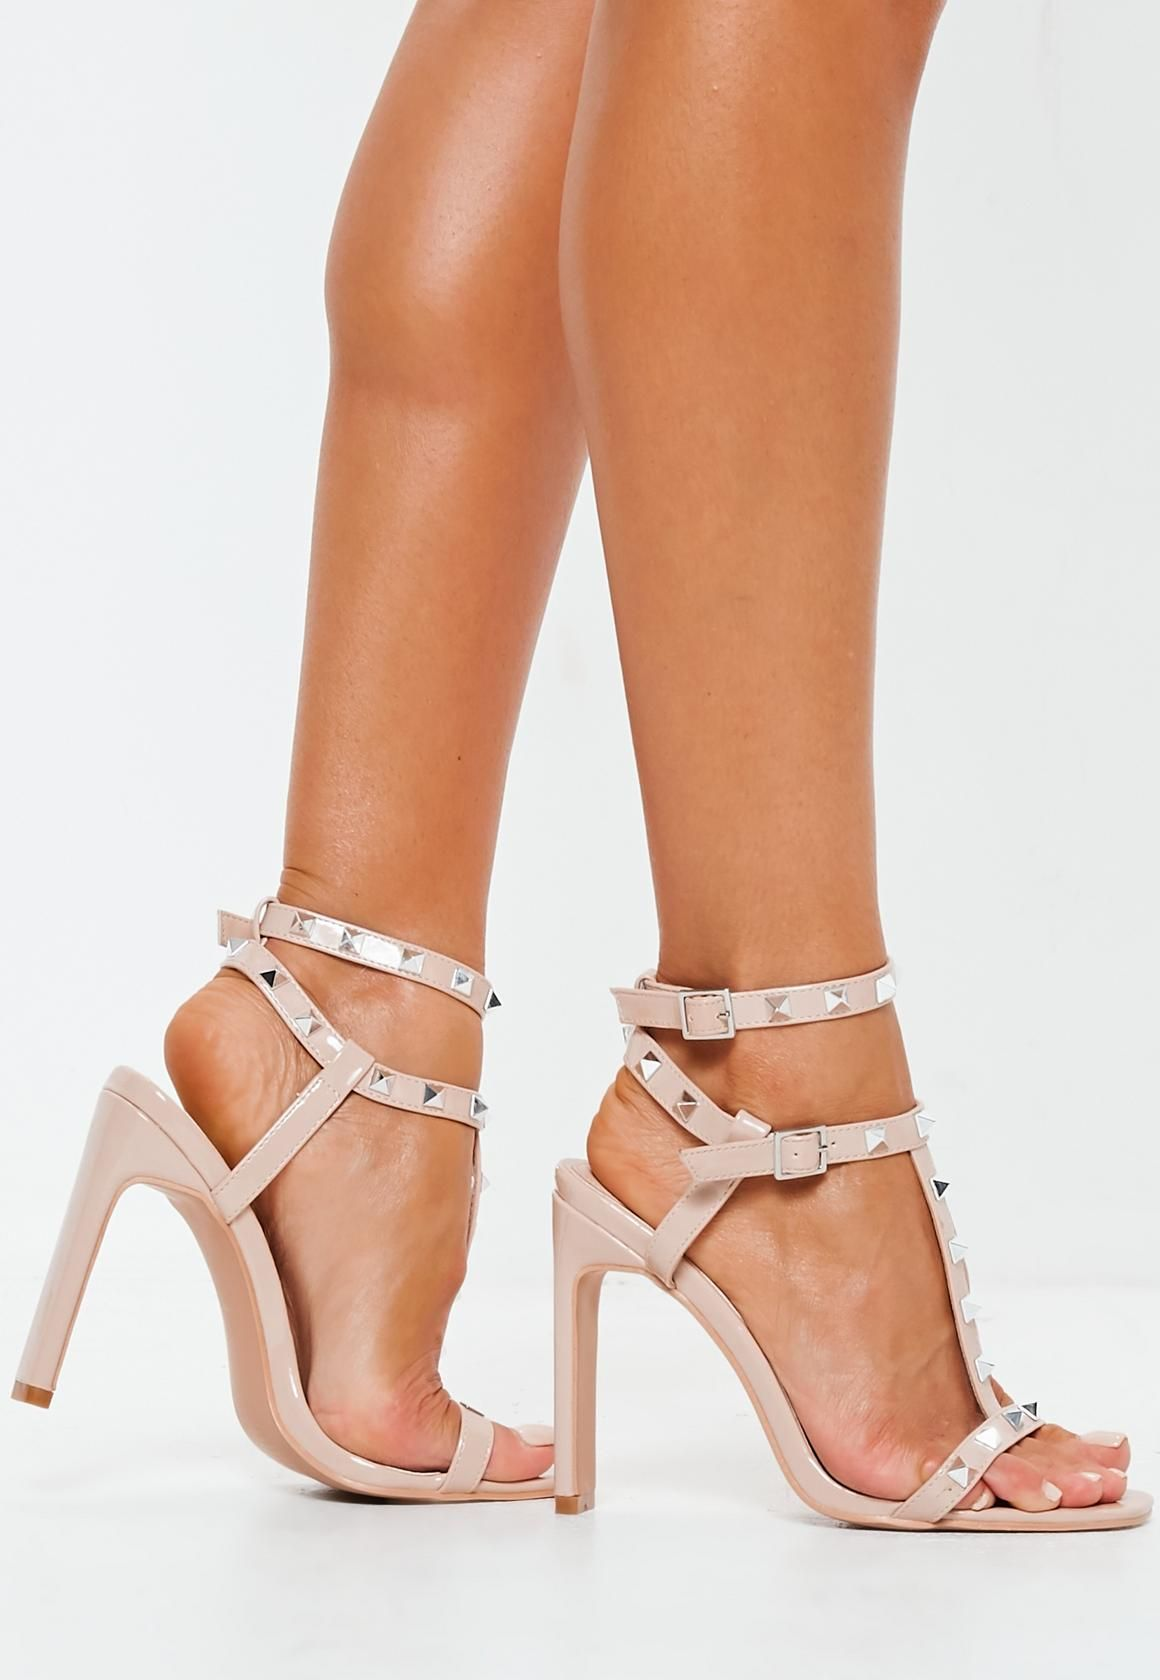 4e17adce6a8 Missguided - Nude Bar Studded Heel Sandals